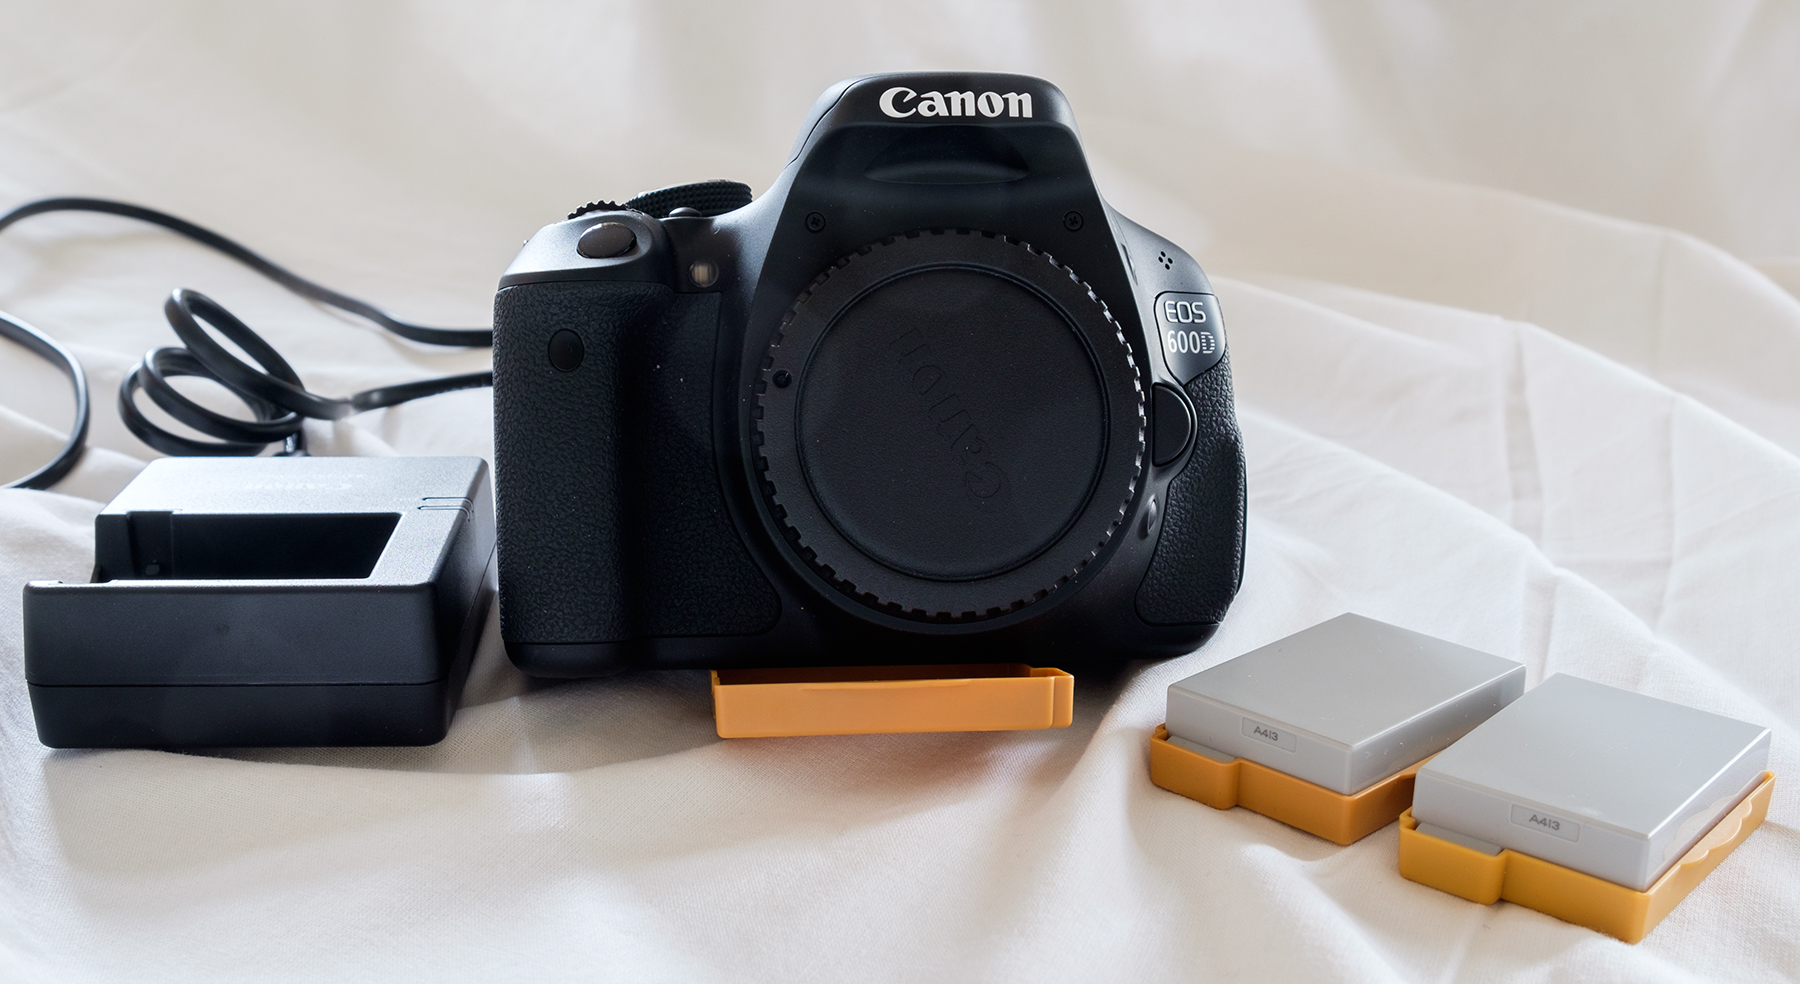 SOLD**PRICE REDUCTION: Canon EOS 600D Astro-Modded by Cheap